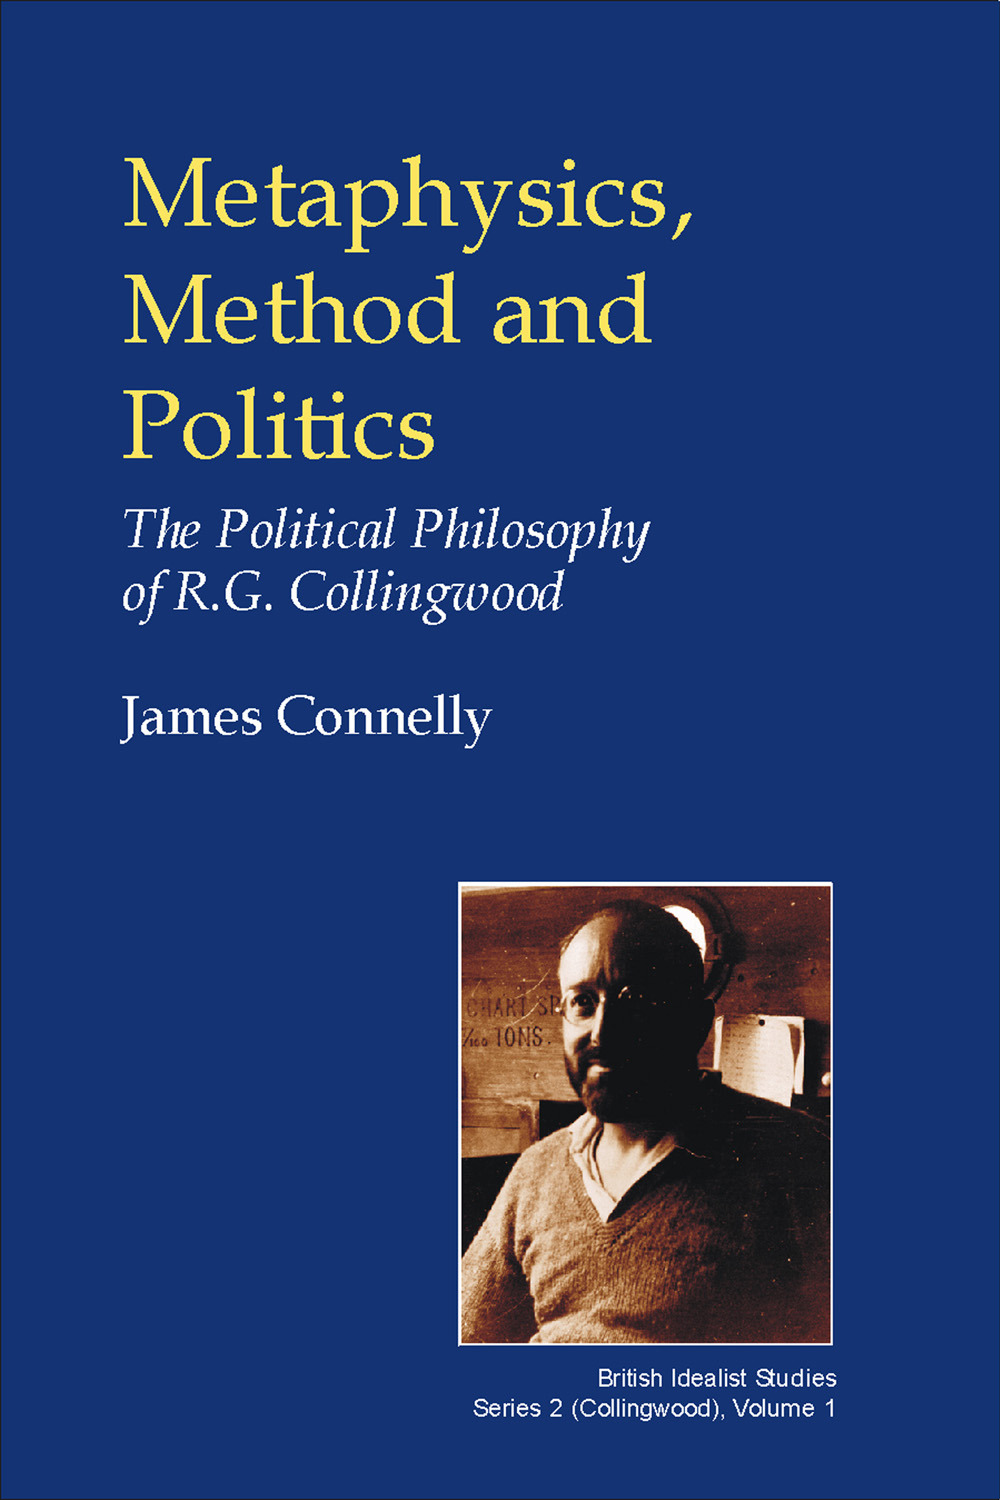 Connelly, James - Metaphysics, Method and Politics, ebook